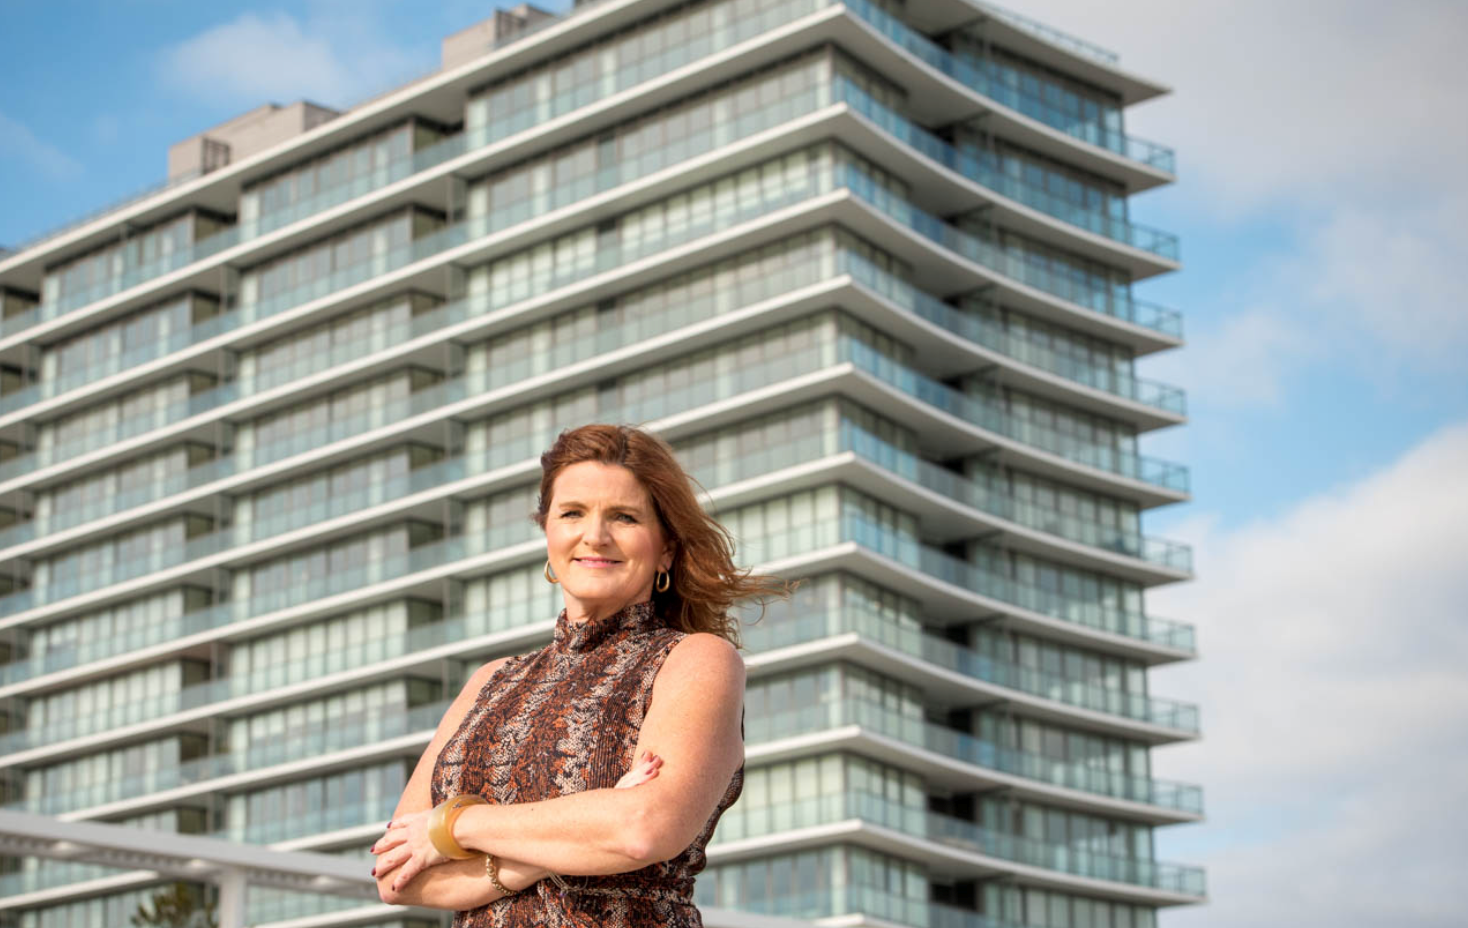 DIANE TURTON, REALTORS AGENT MARY MCALLISTER REPRESENTS BUYER OF $5 MILLION PENTHOUSE AT ASBURY OCEAN CLUB